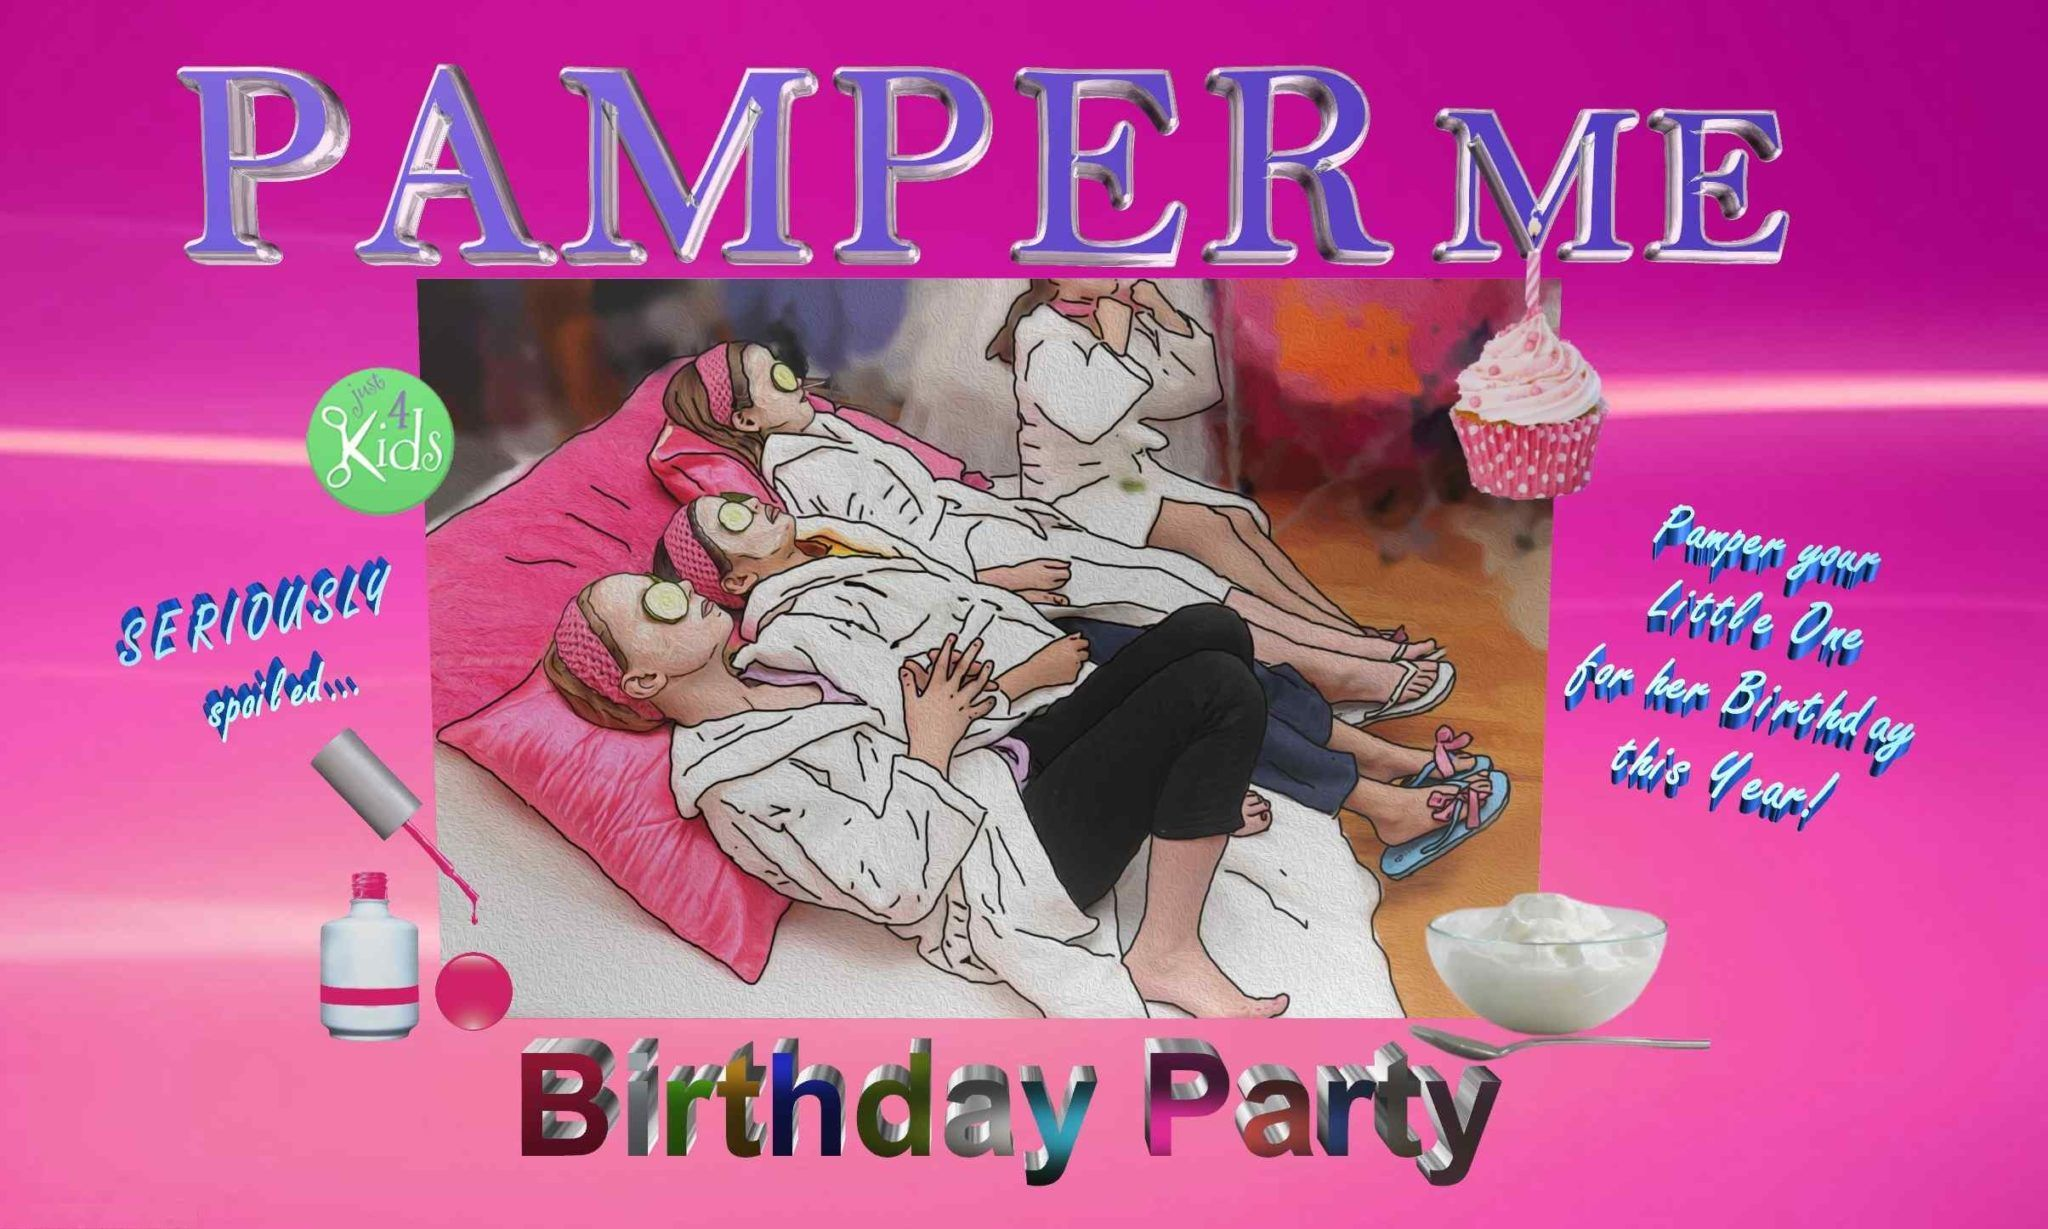 Pamper Me Spa Birthday Party Logo